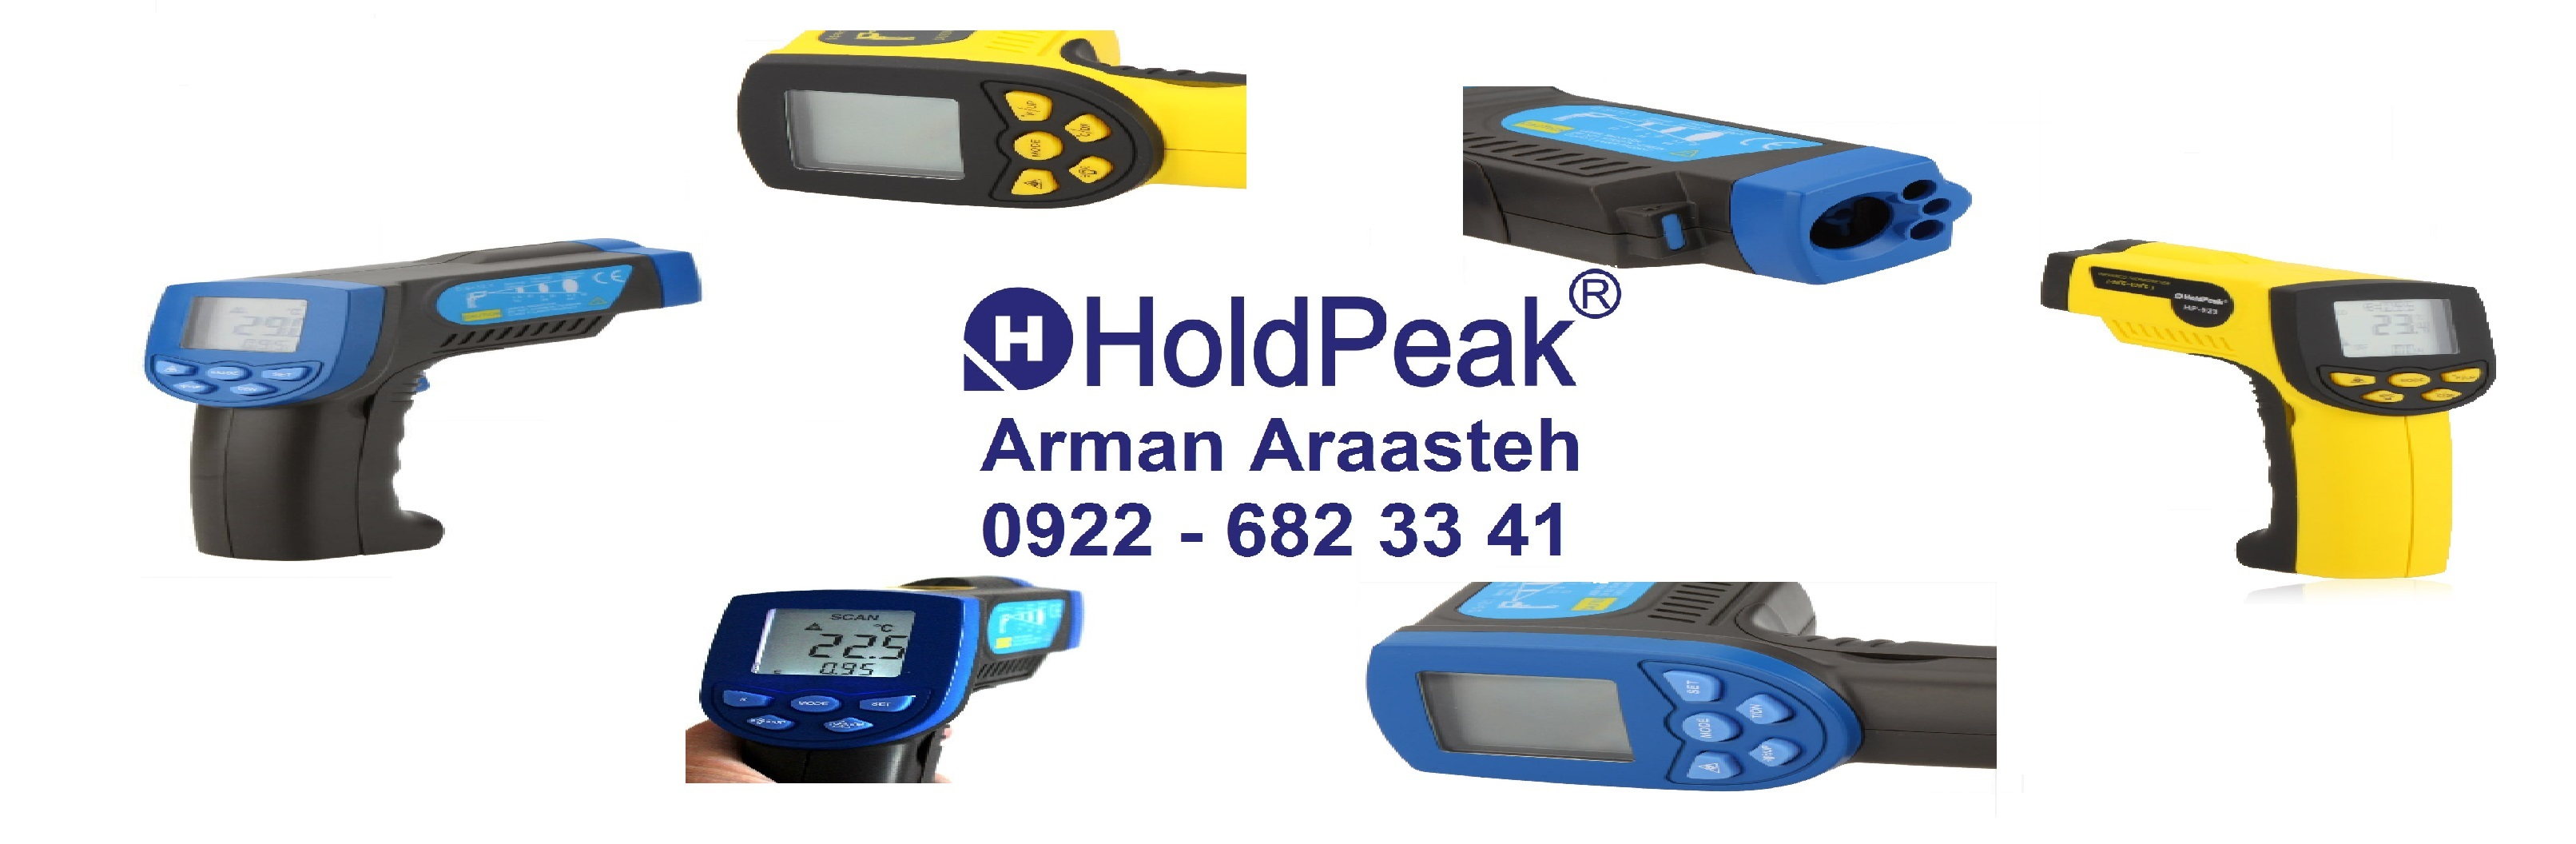 Holdpeak Infrared Thermo Hi Tester Hioki Ft3701 20 Ahrefhttp Display Inline Block Padding Right 20px Background Transparent Urlhttp Noor119persiangigcom 2gb Center No Repeat